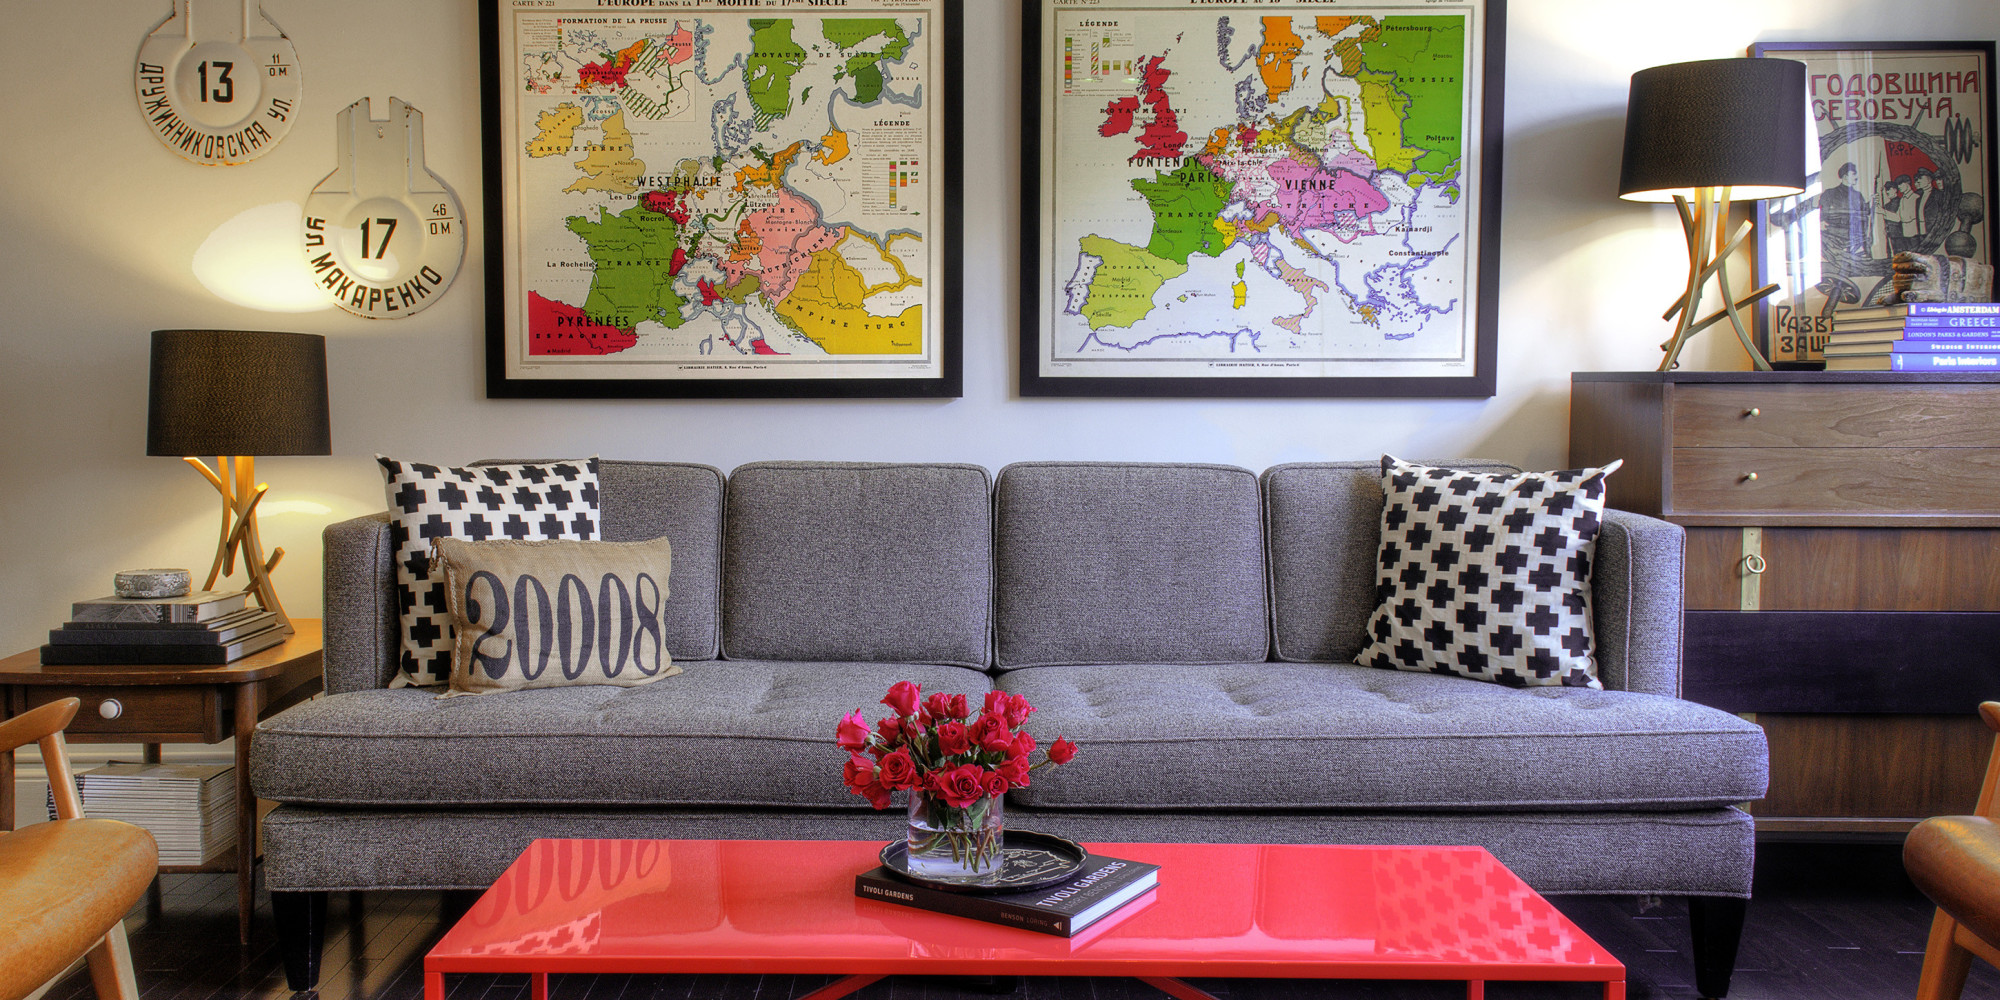 50 ways to update your living room for 50 or less photos for Image of a room